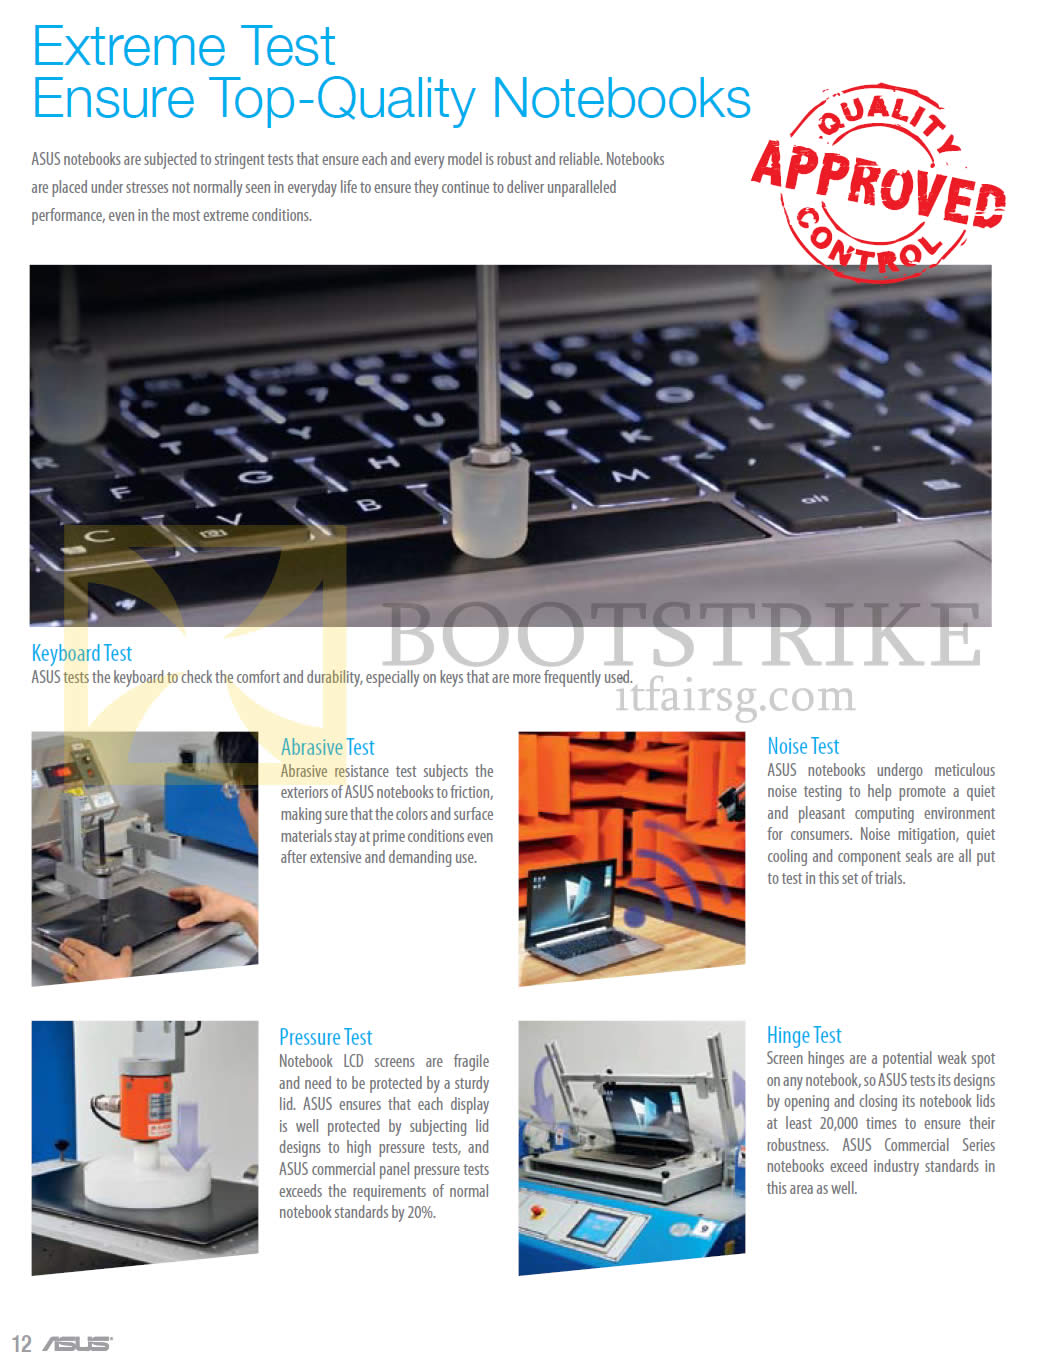 COMEX 2013 price list image brochure of ASUS About Tests Abrasive, Noise, Pressure, Hinge